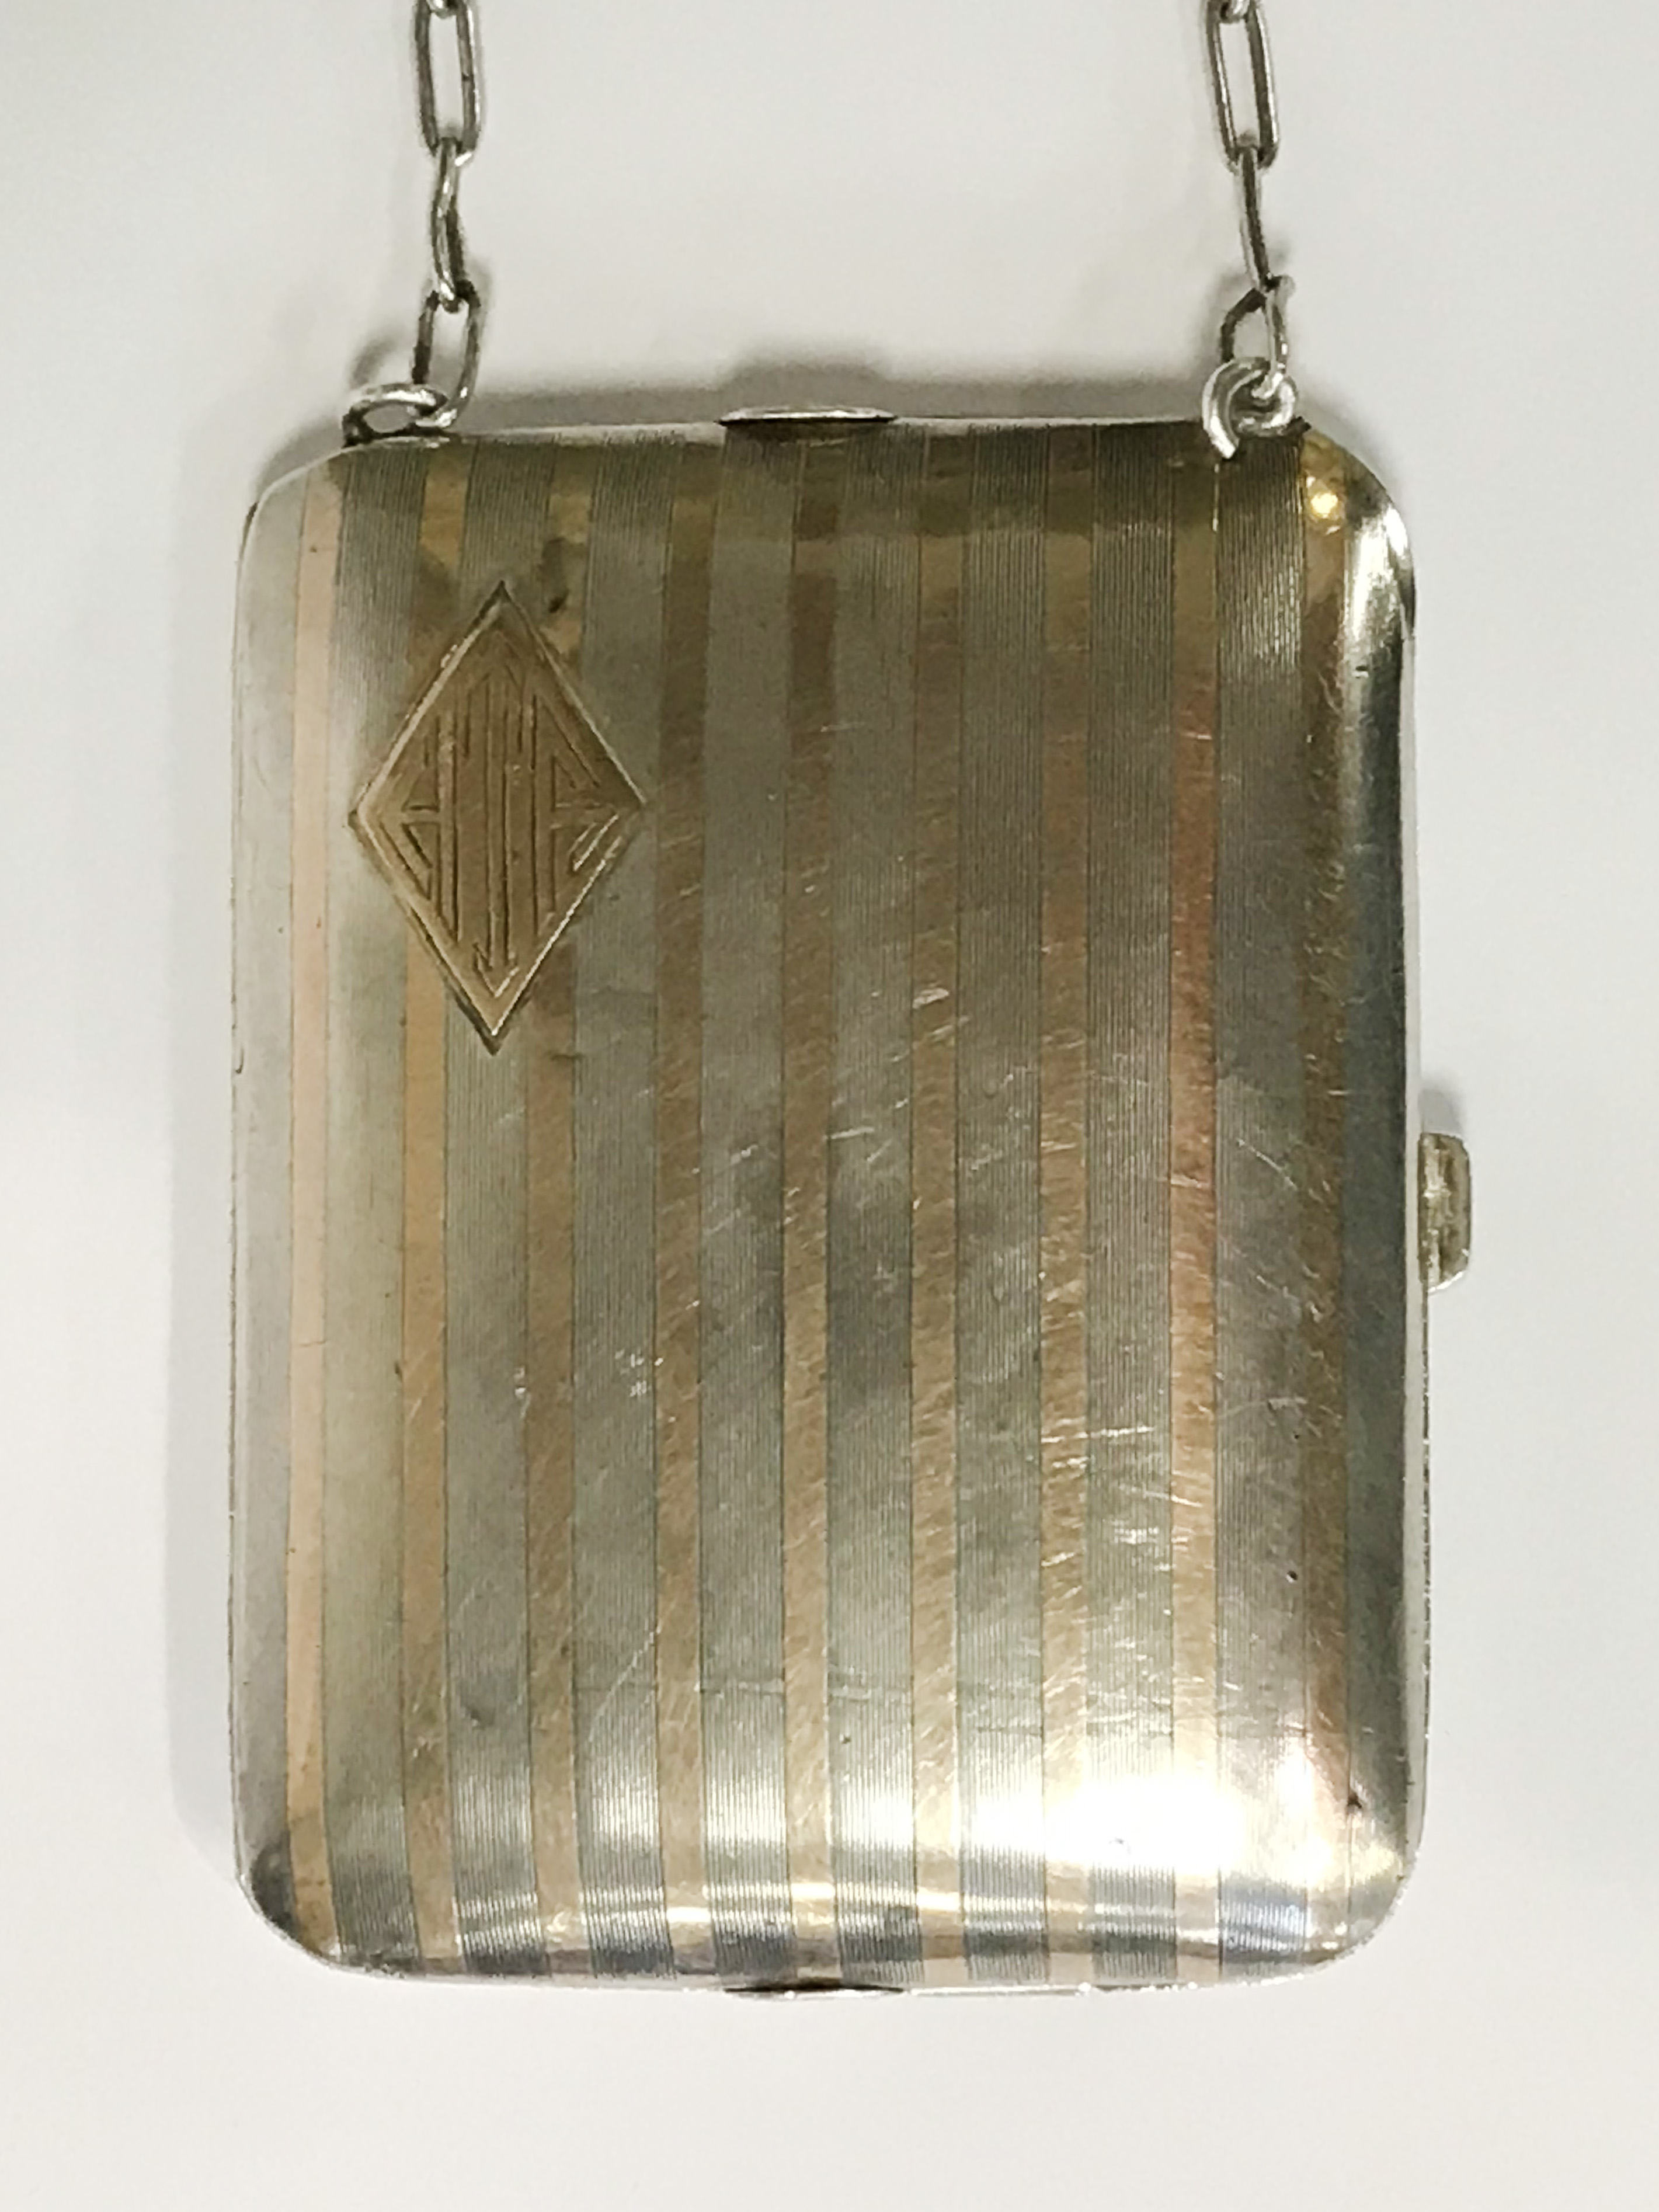 HM SILVER & GOLD INLAID COMPACT - 9CMS X 6.5CMS - Image 2 of 7